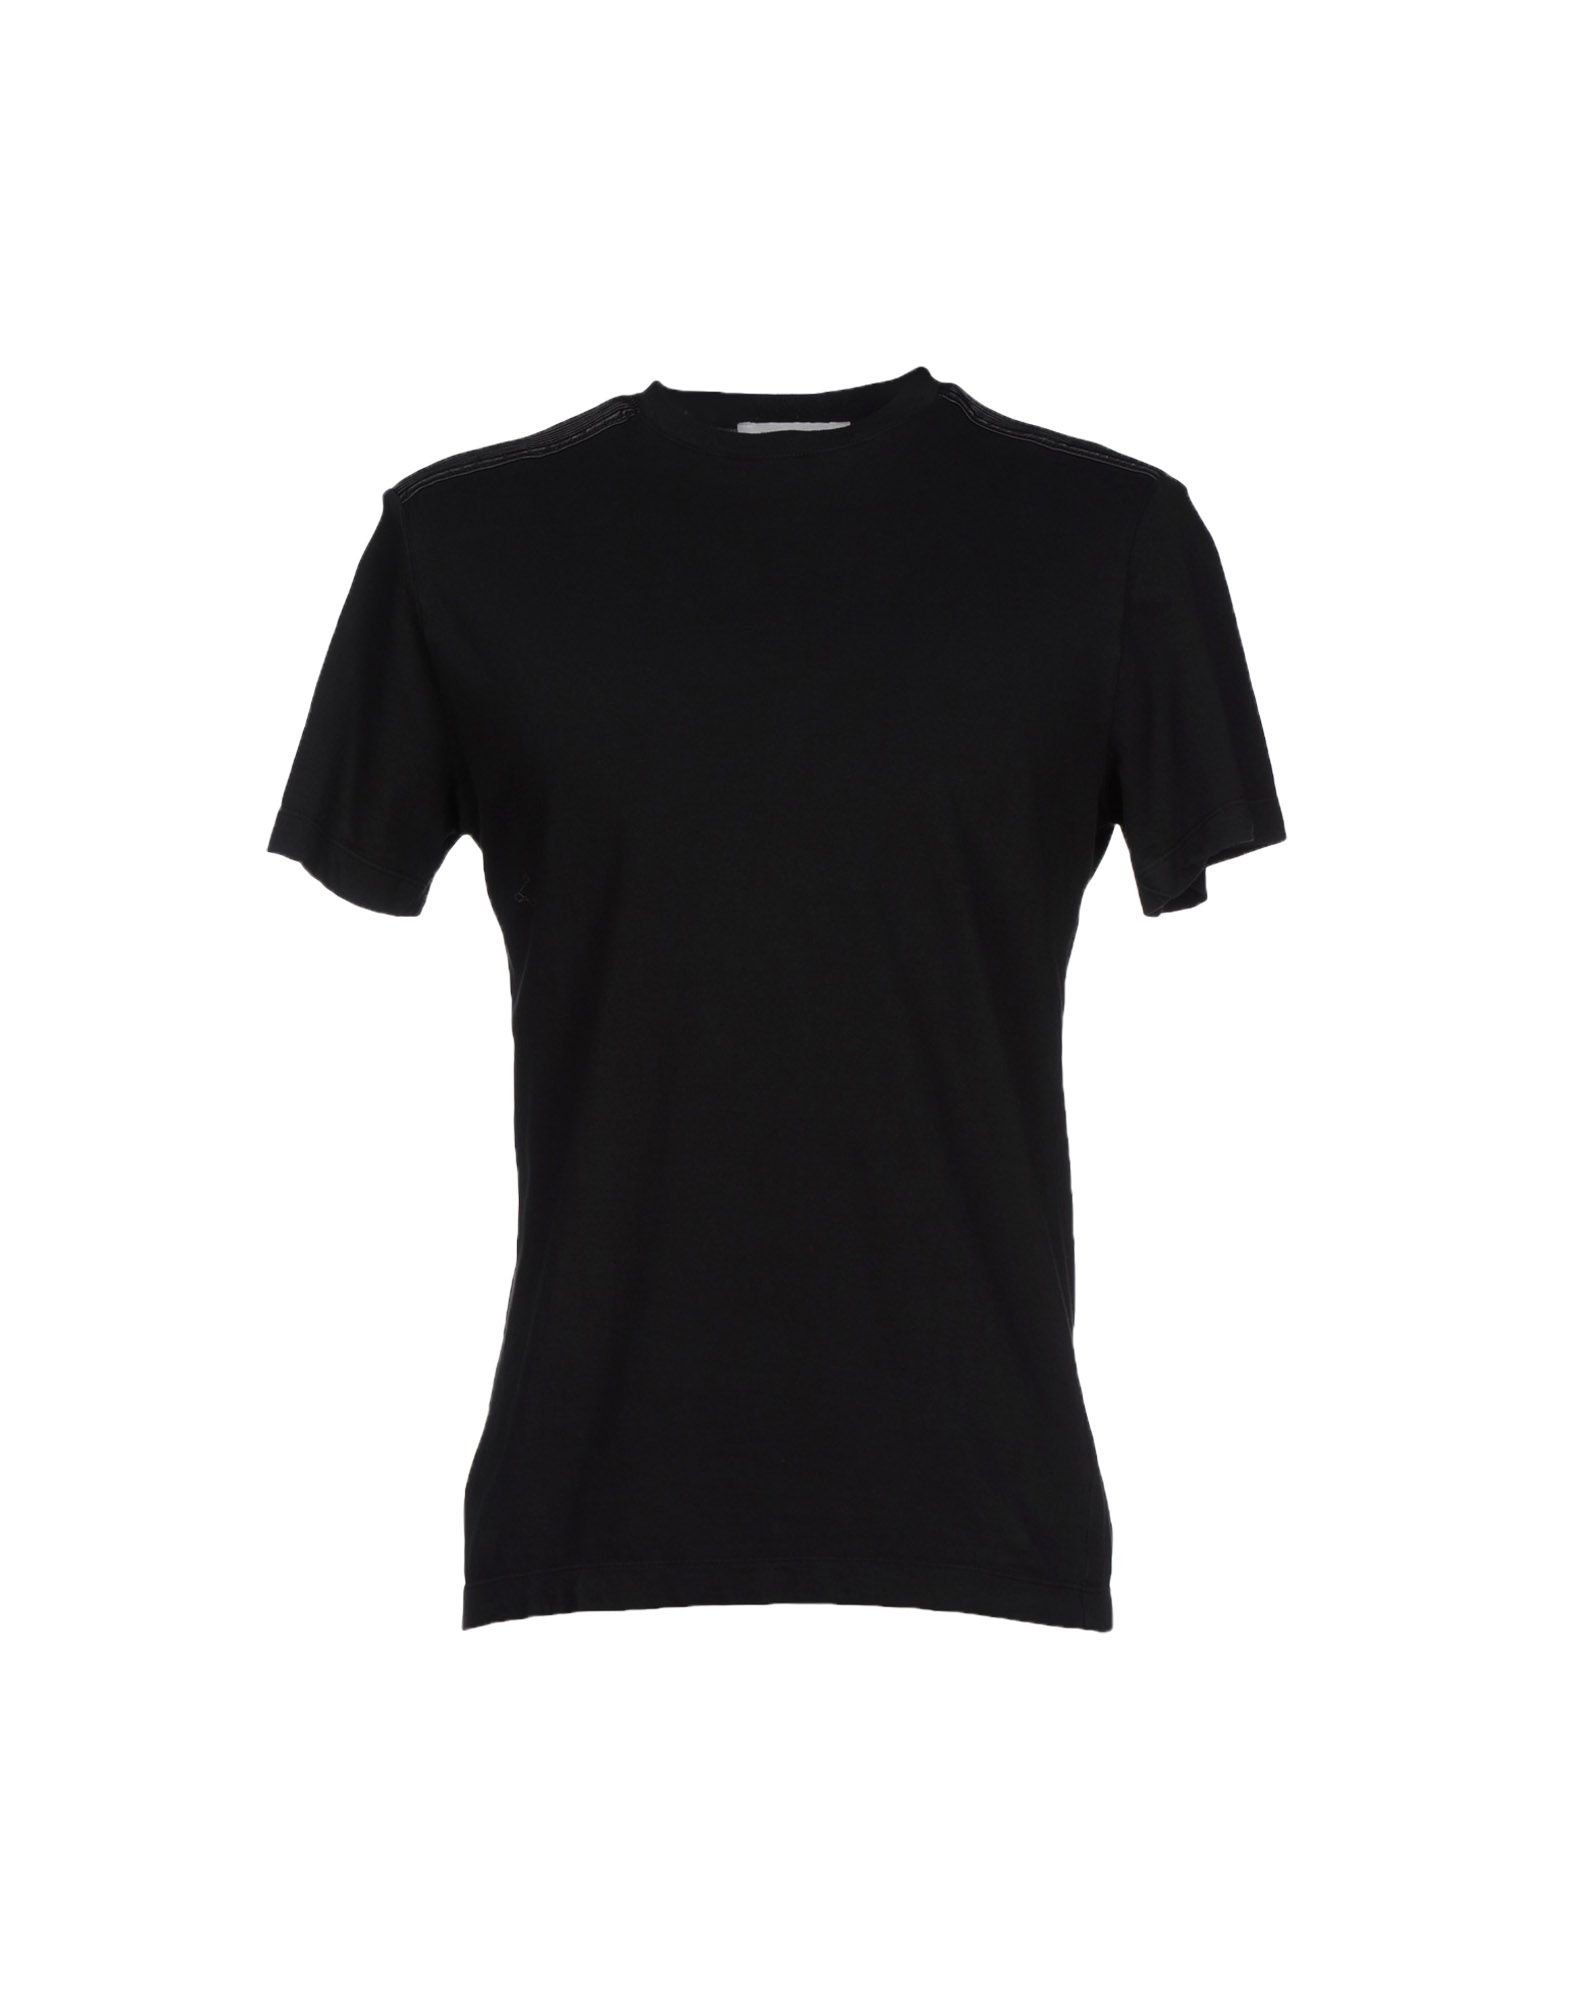 balmain t shirt in black for men lyst. Black Bedroom Furniture Sets. Home Design Ideas